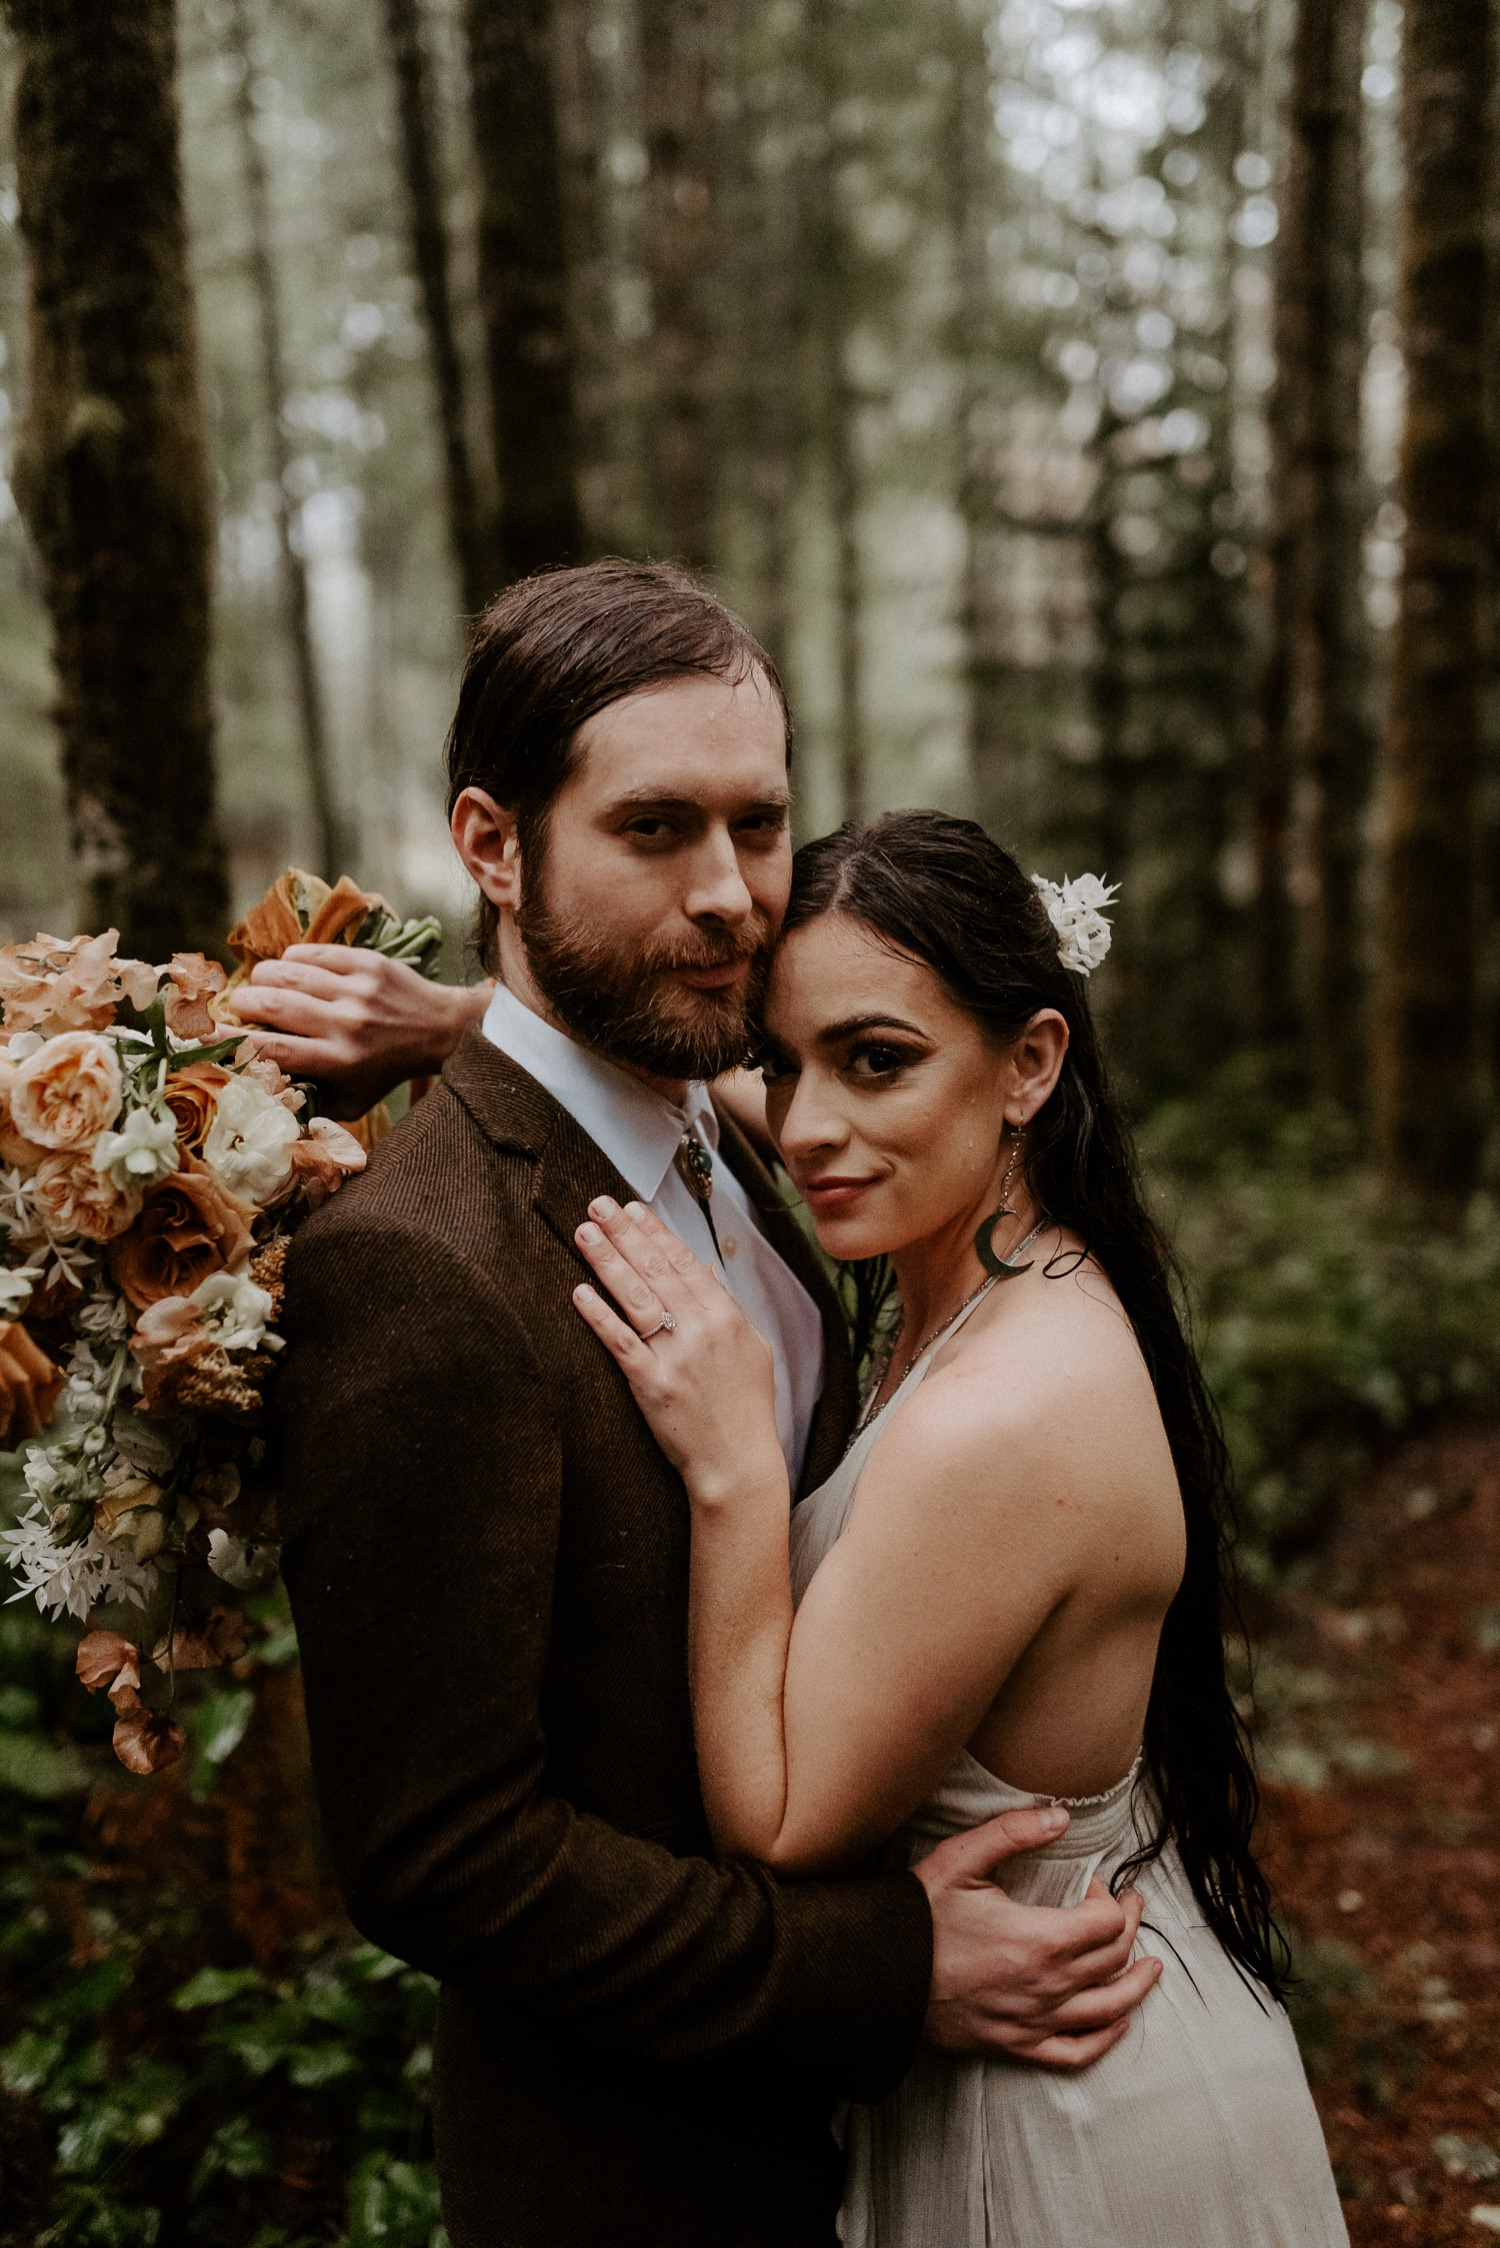 The Woodlands House Sandy Oregon Elopement Portland Elopement Photographer PNW Adventurous Elopement Anais Possamai Photography 040